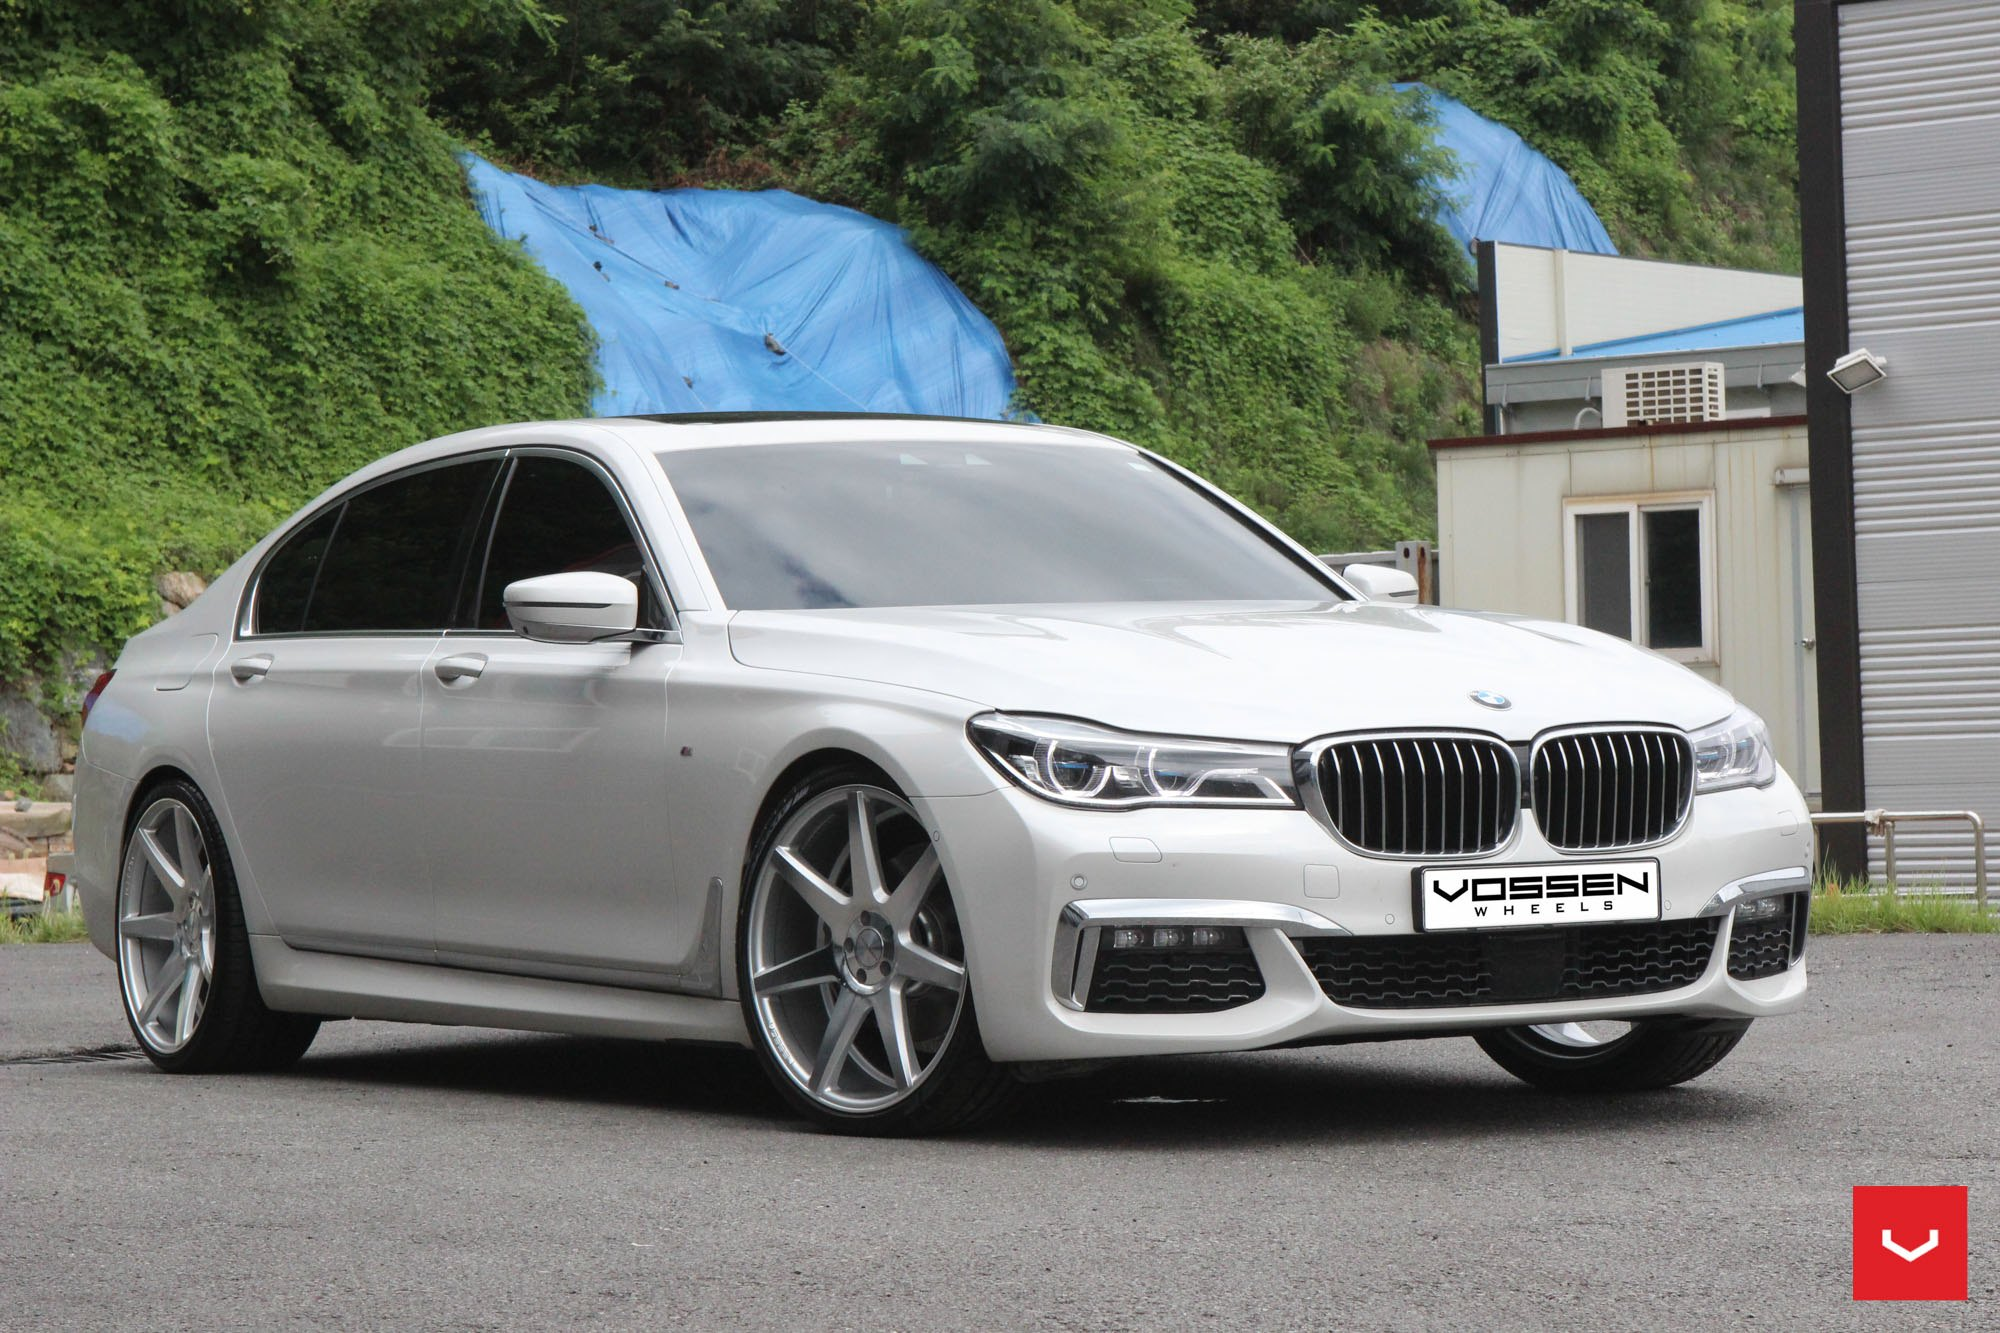 white bmw 7 series enhanced by chrome details. Black Bedroom Furniture Sets. Home Design Ideas